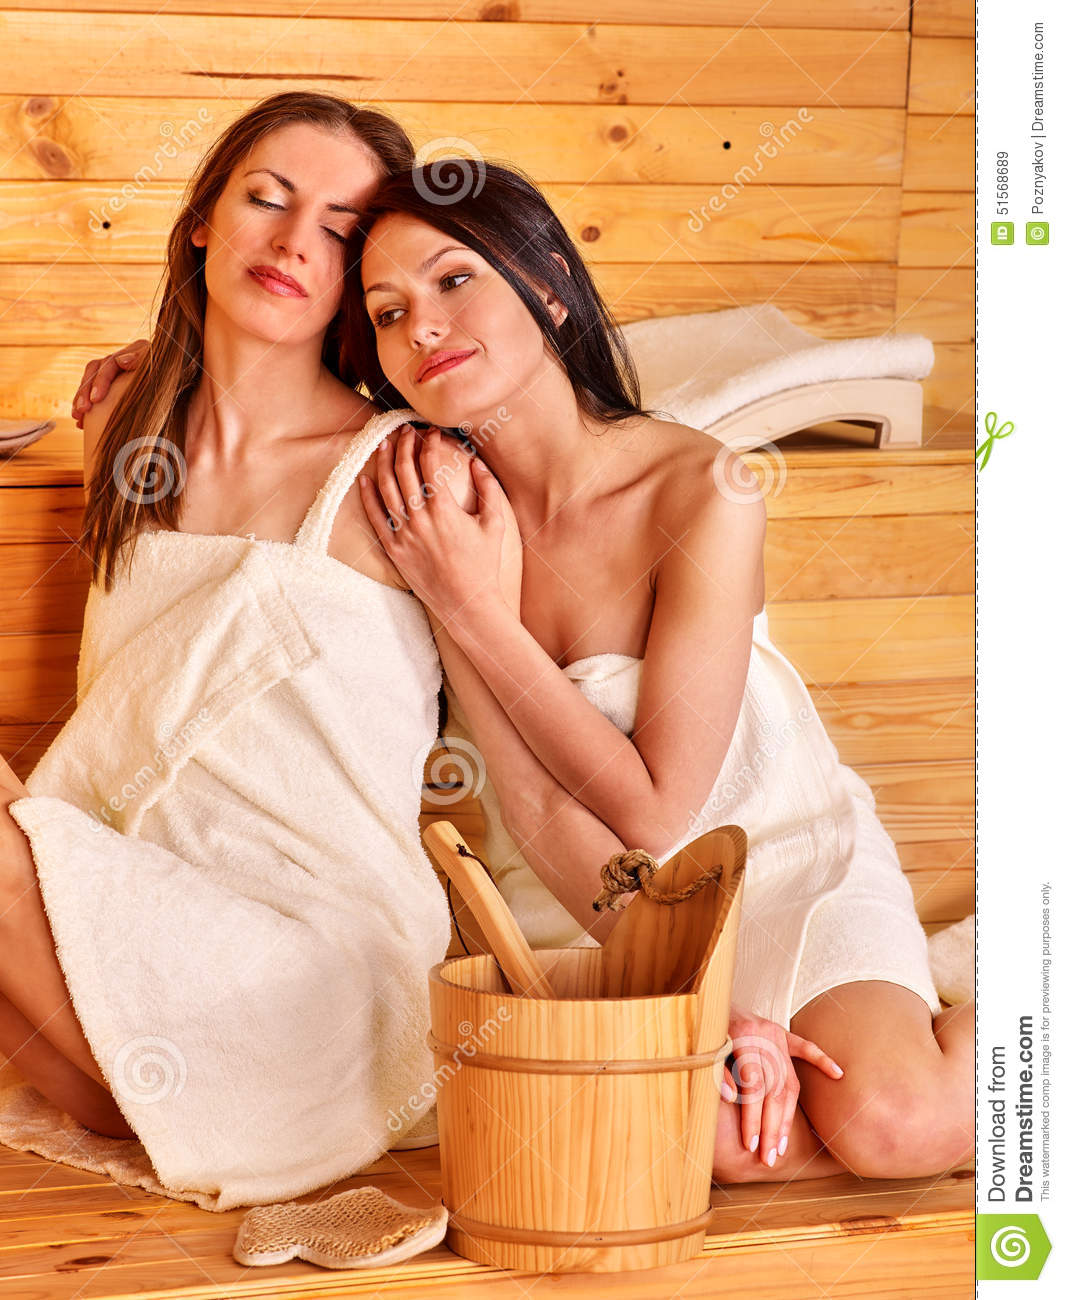 Two Girls Relaxing In Sauna Stock Photo - Download Image